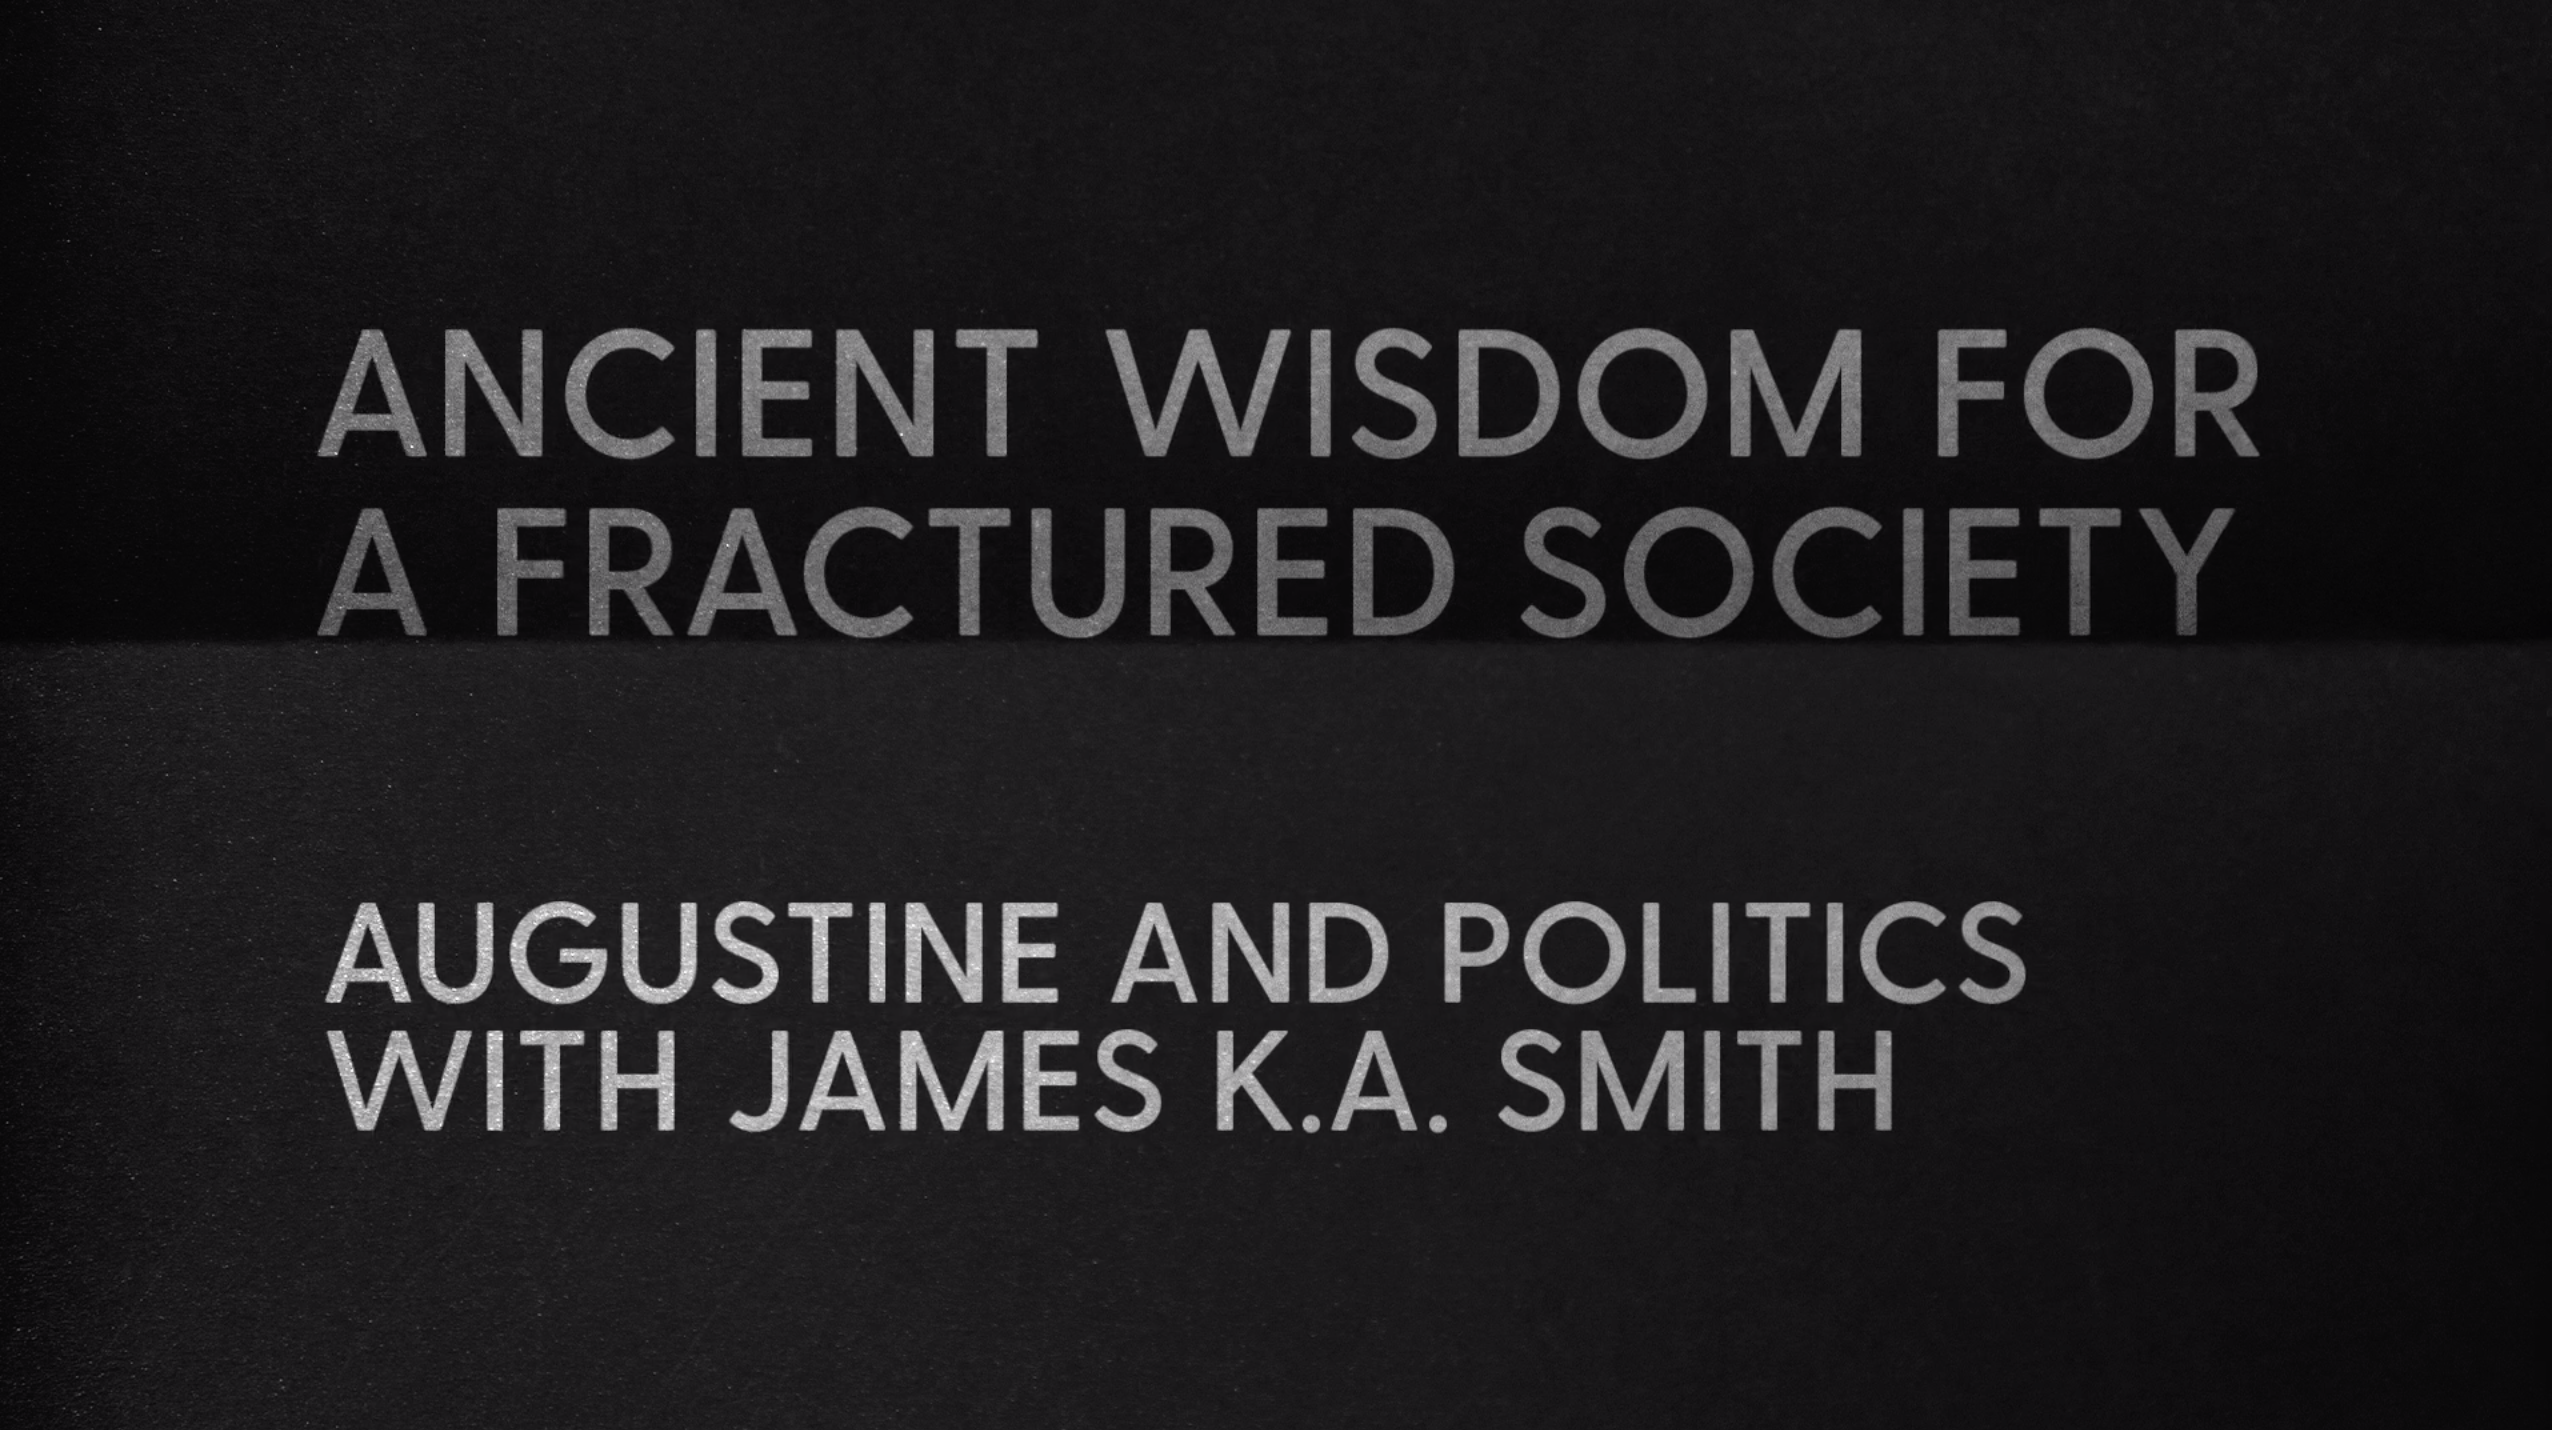 Ancient Wisdom for a Fractured Society